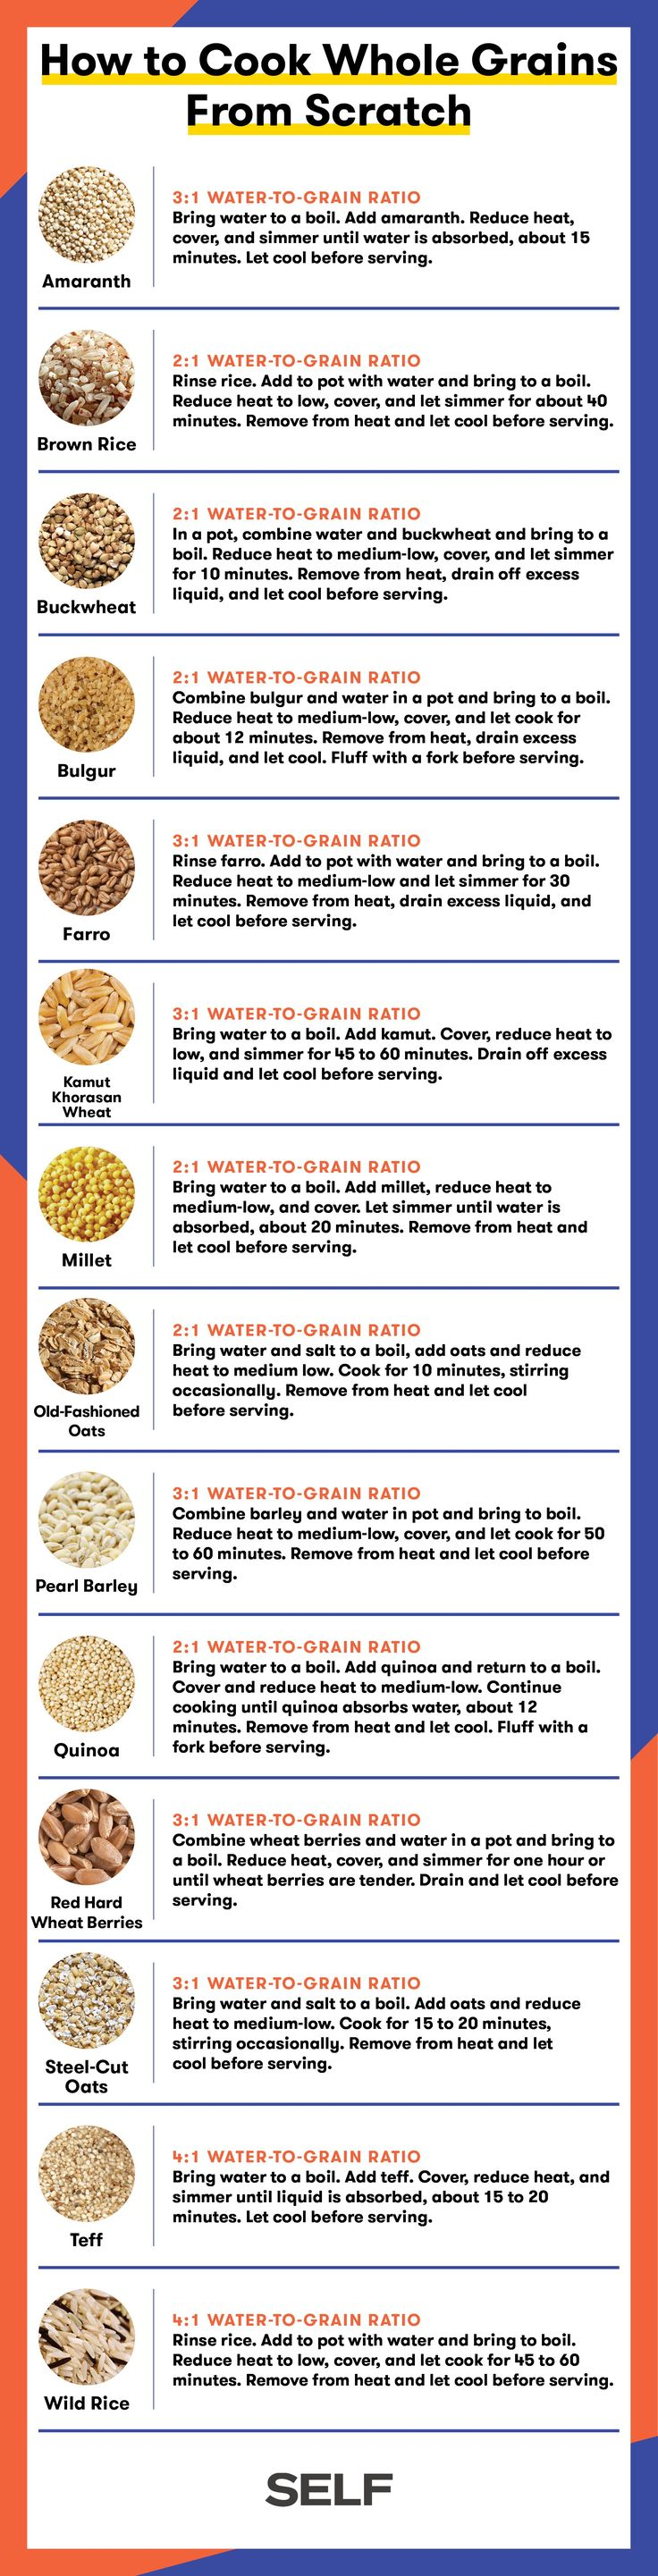 How To Cook Every Whole Grain Perfectly